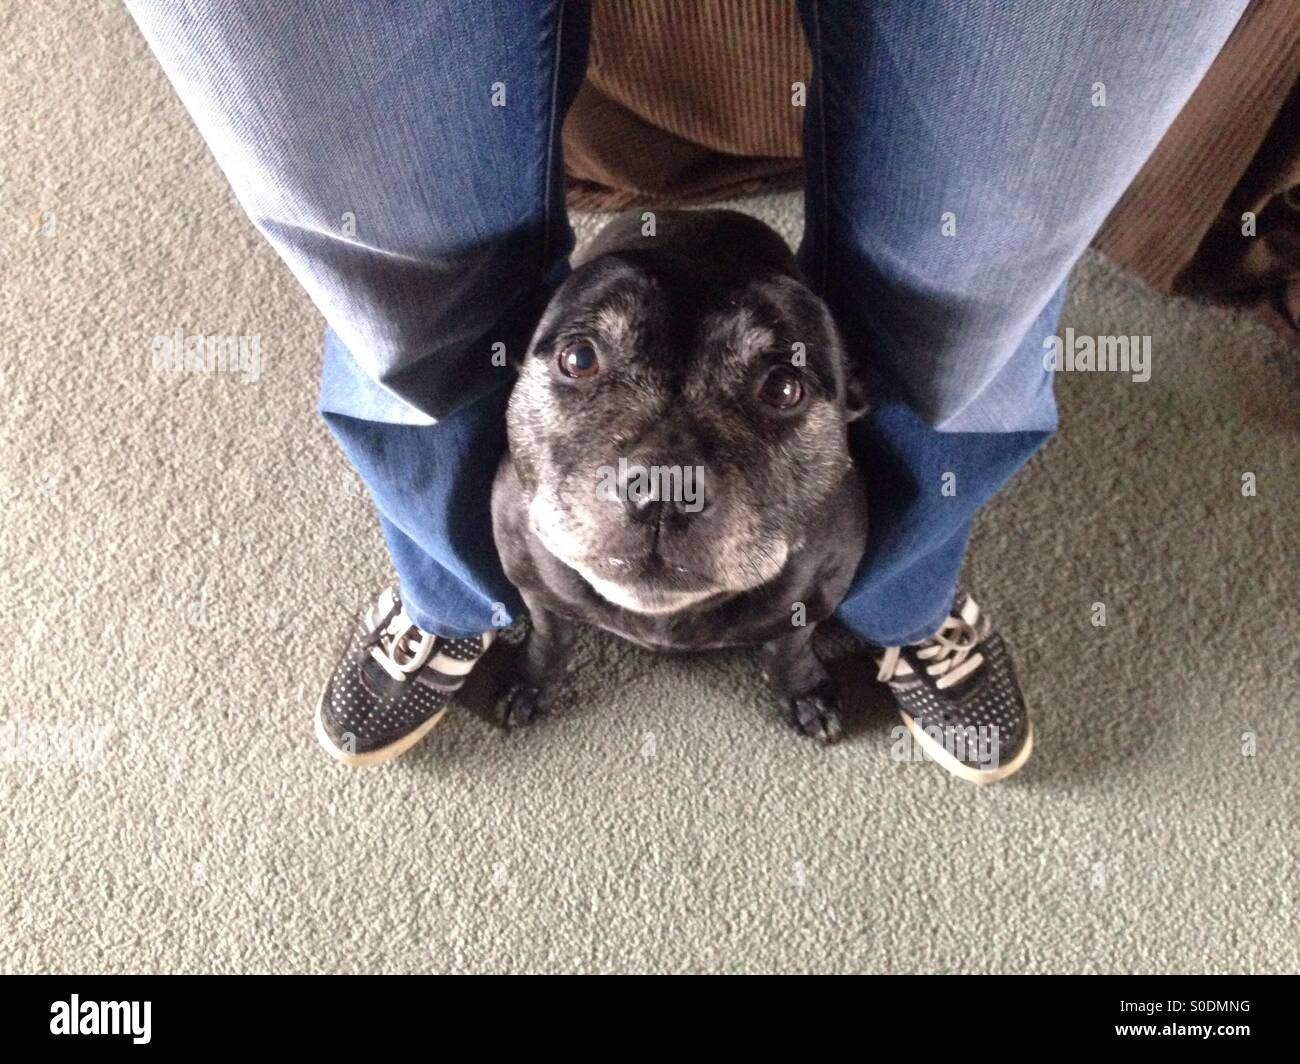 Staffordshire Terrier dog in between owners legs - Stock Image